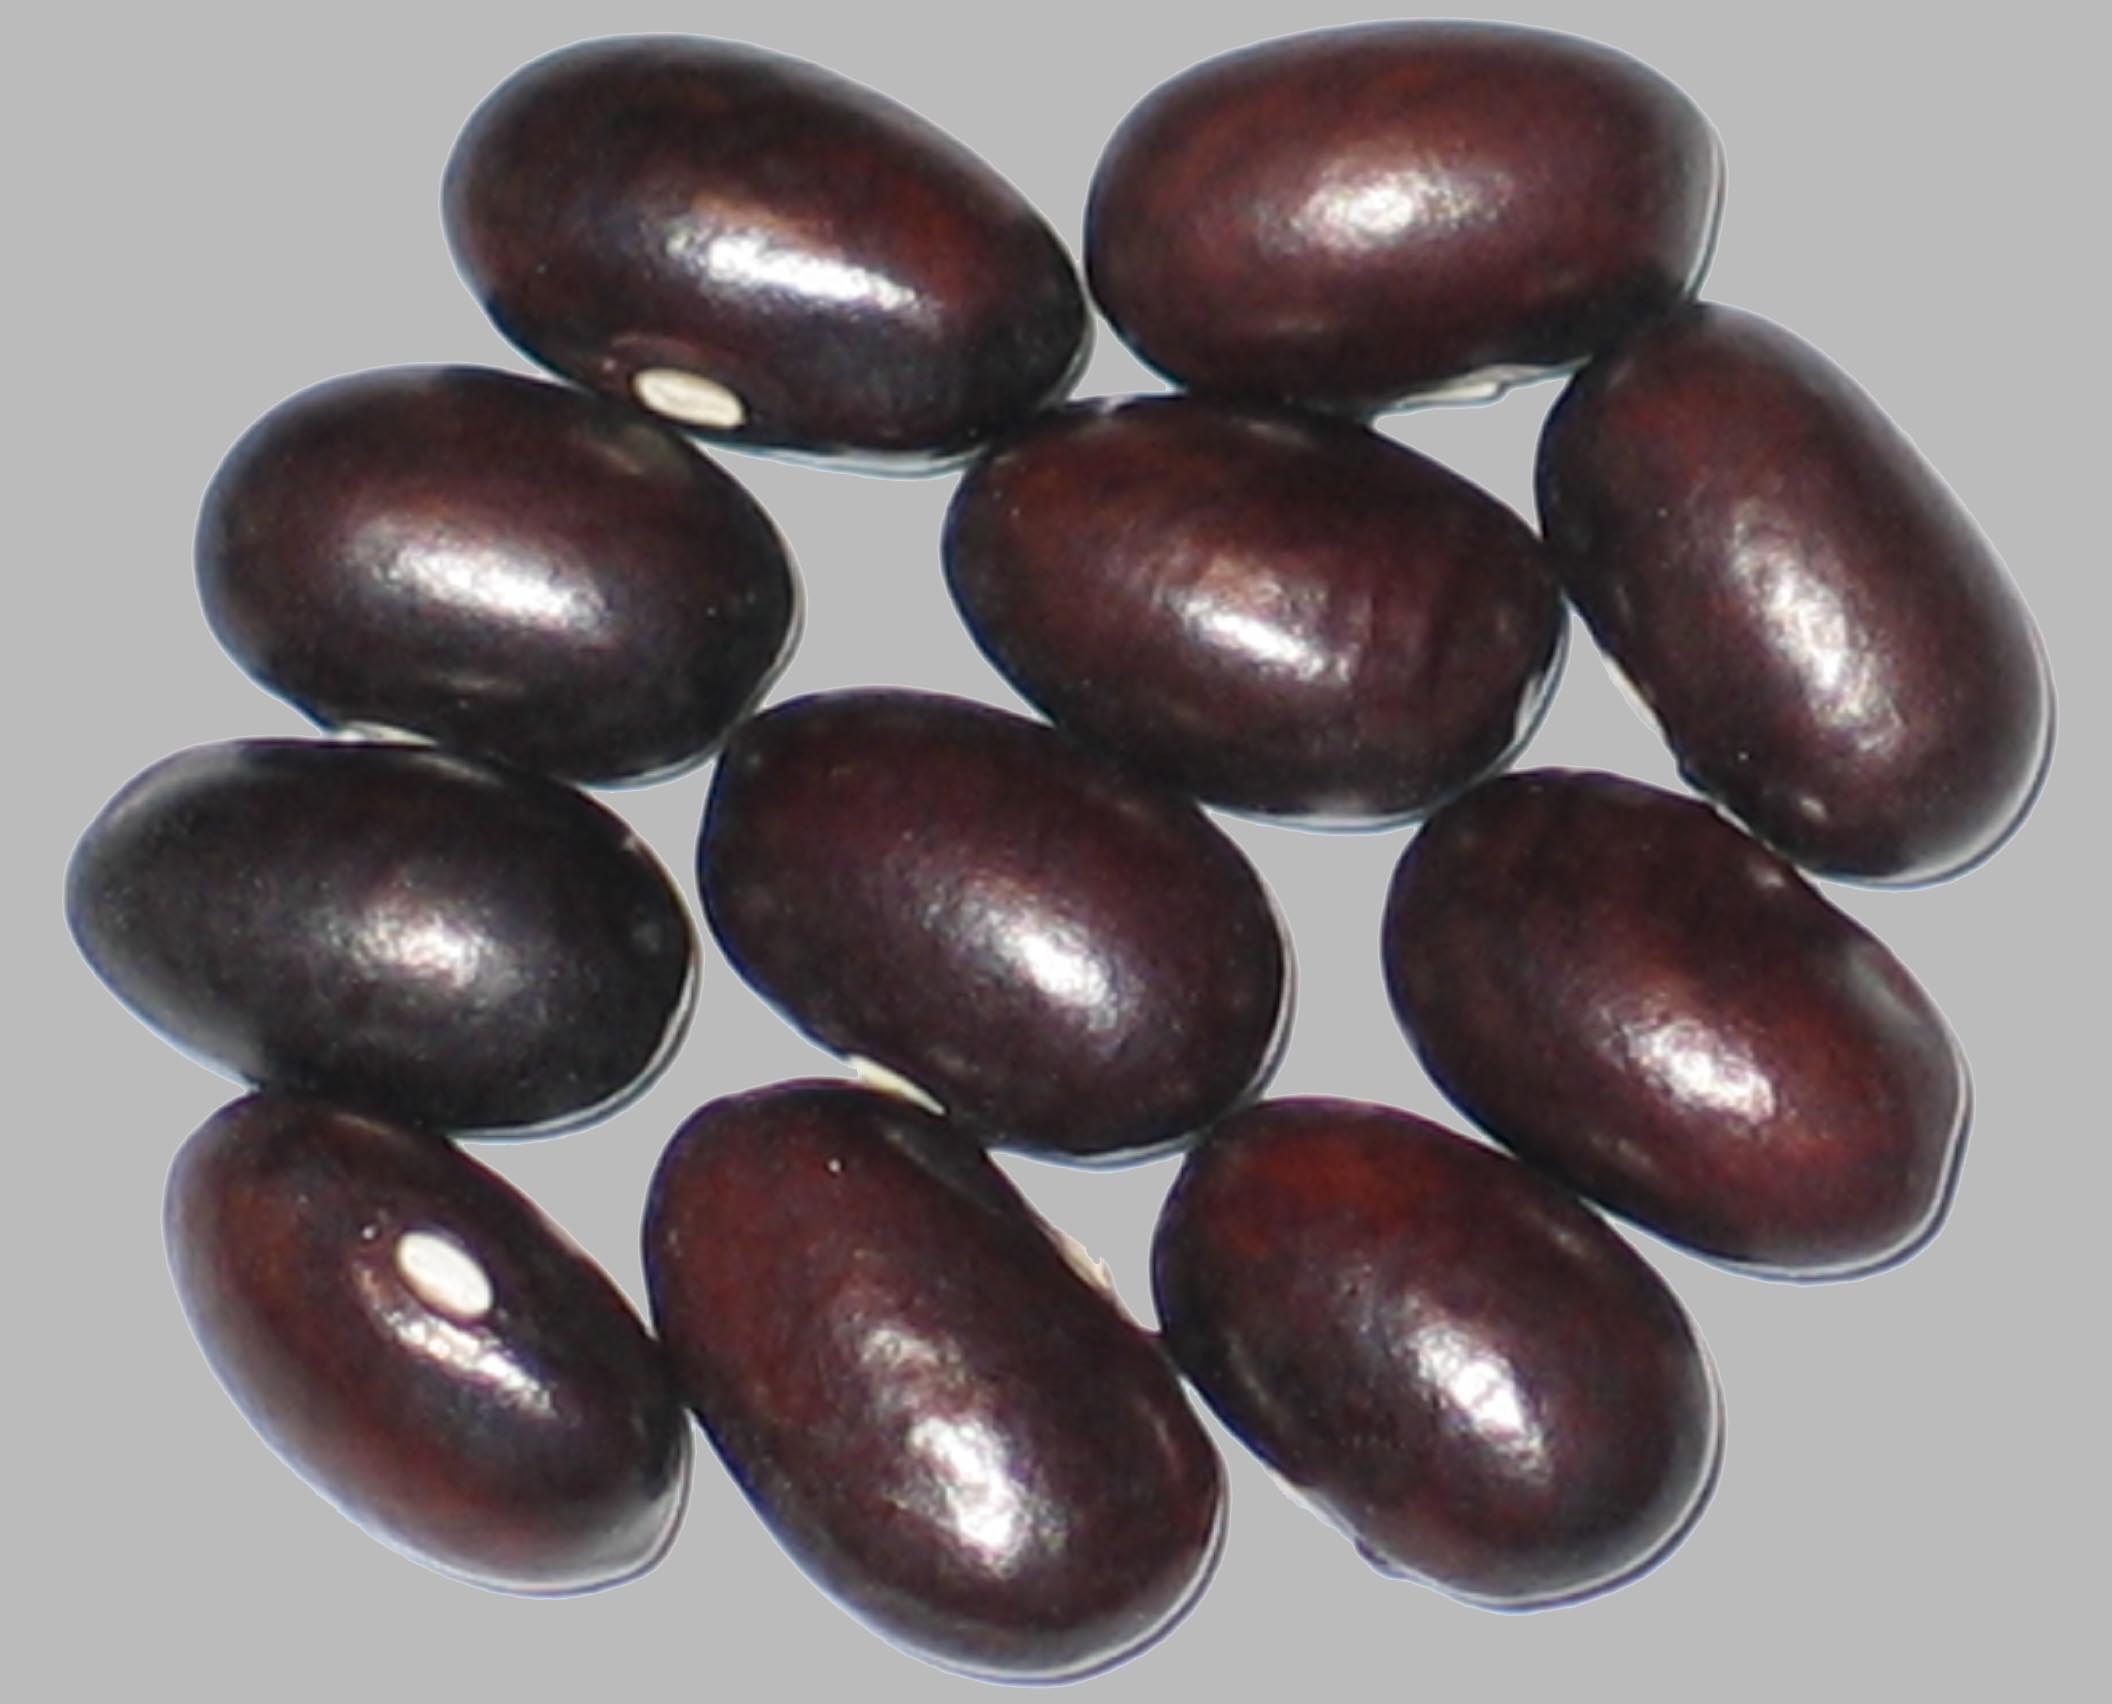 image of Evolutie beans